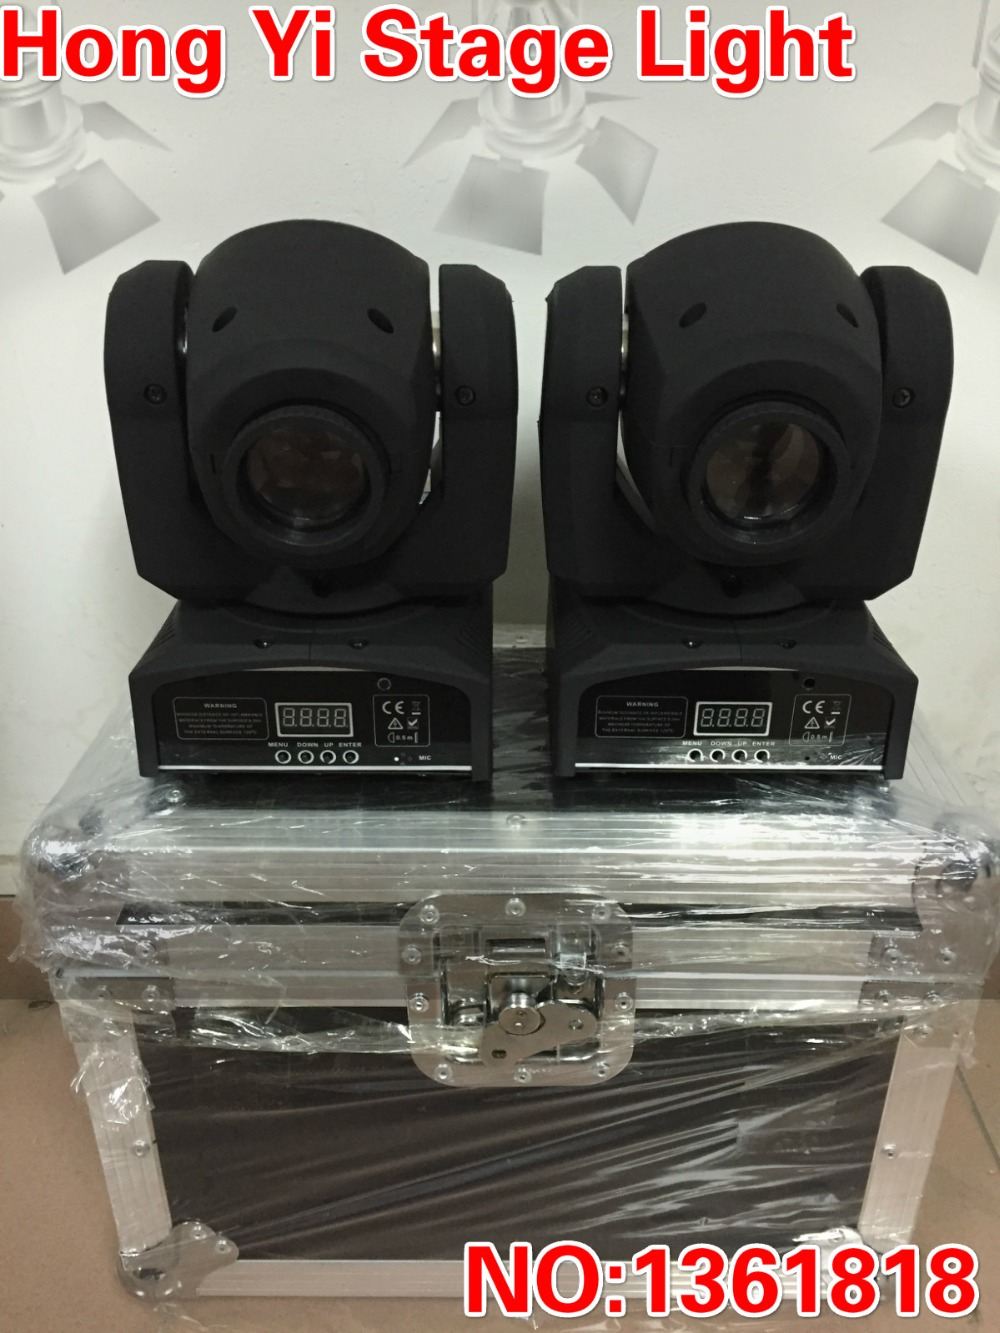 Hong Yi Stage Lighting LED Moving Head gobos Light DMX512 with Flight case for Disco DJ Club Home Garden Party Wedding Effect(China (Mainland))